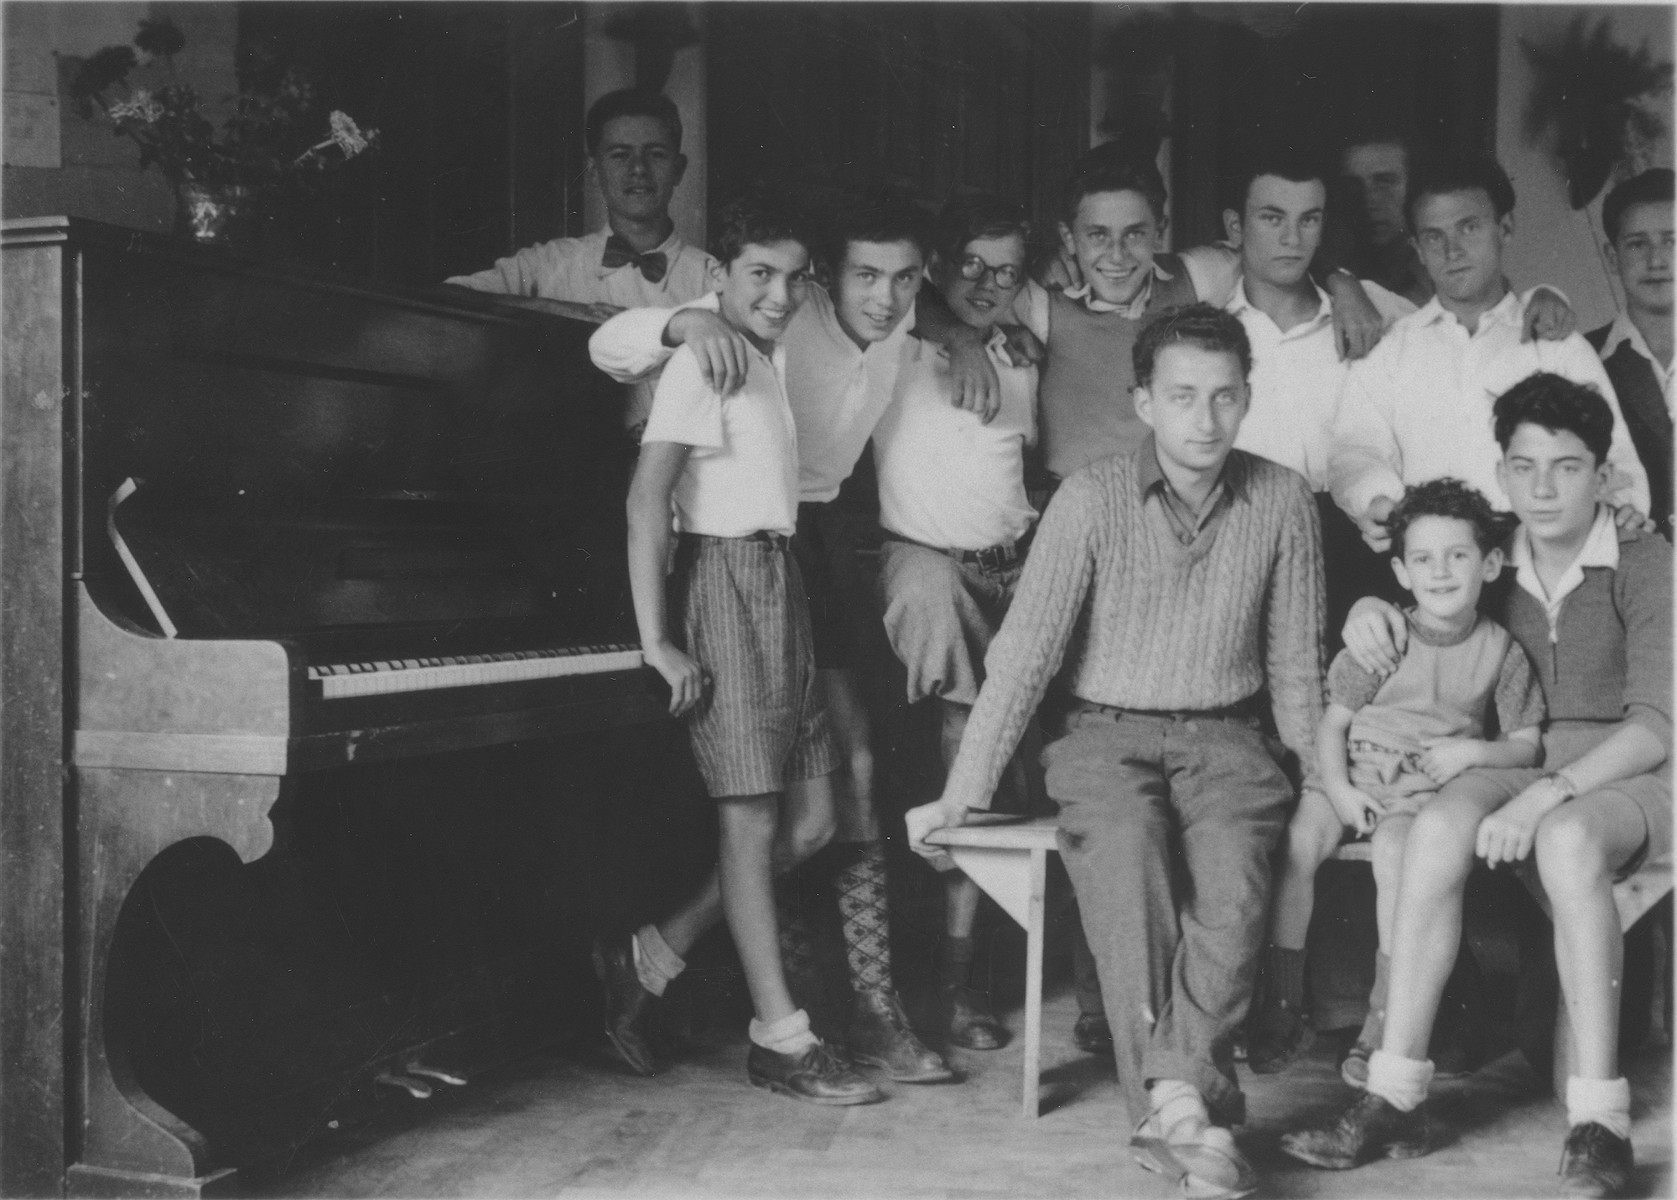 A group of boys gathers around a piano in the Hôme de la Forêt, a children's home run by the (Oeuvre de Secours aux Enfants) in Geneva, Switzerland.  Among those pictured are Gilles Segal, Norbert Bikales, Henri Karnowsky, Victor Karnowsky and Gert Silberbard (later Gert Silver) (center).   Leaning on the piano is Rudoph.